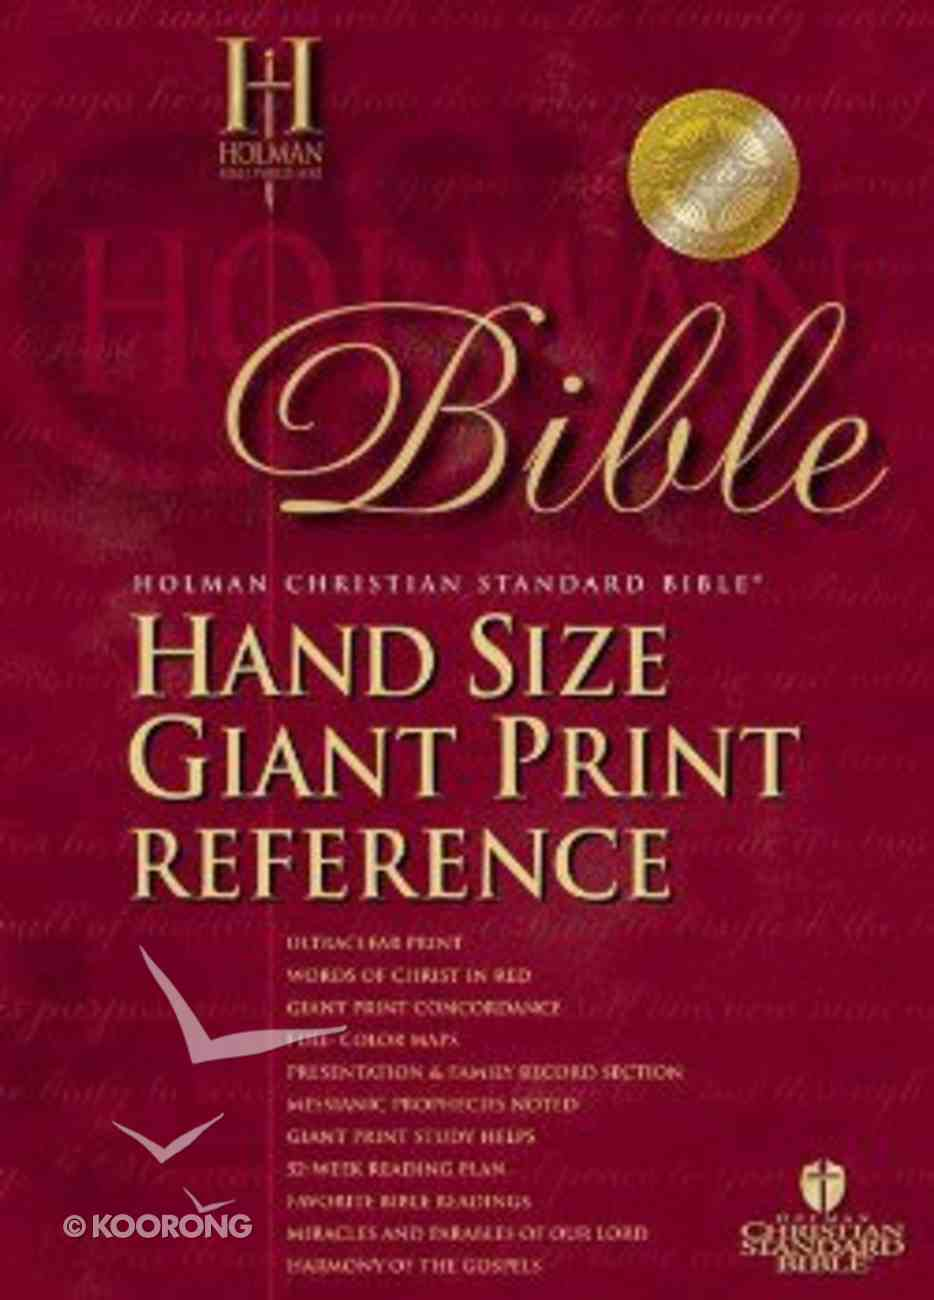 HCSB Hand Size Giant Print Reference Classic Edition Burgundy Bonded Leather